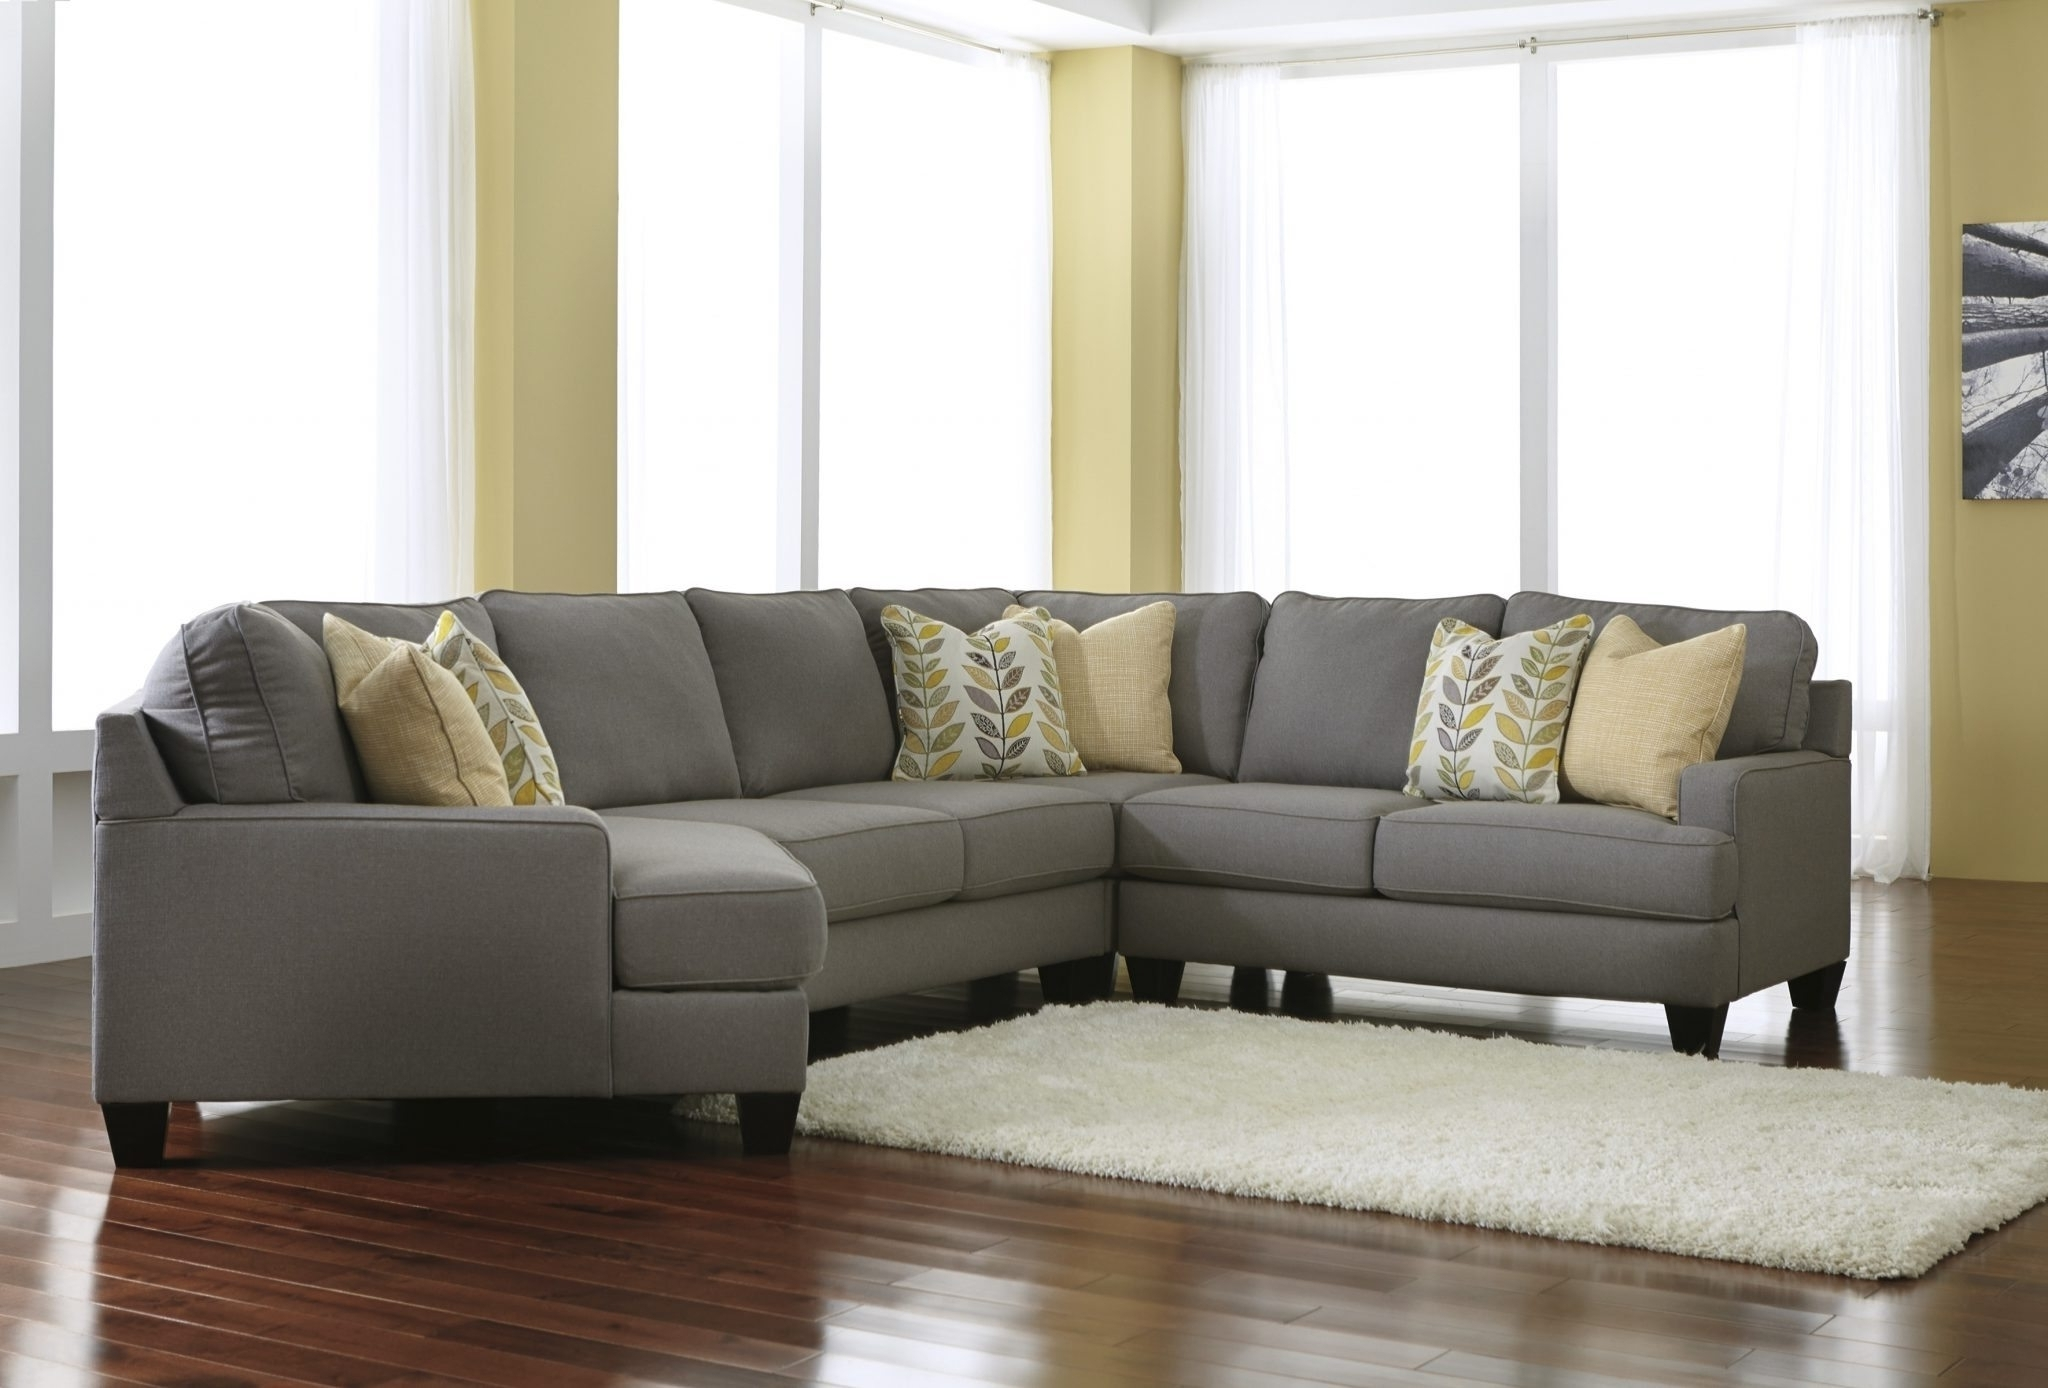 20 Ideas Of Ventura County Sectional Sofas Inside Visalia Ca Sectional Sofas (View 4 of 10)